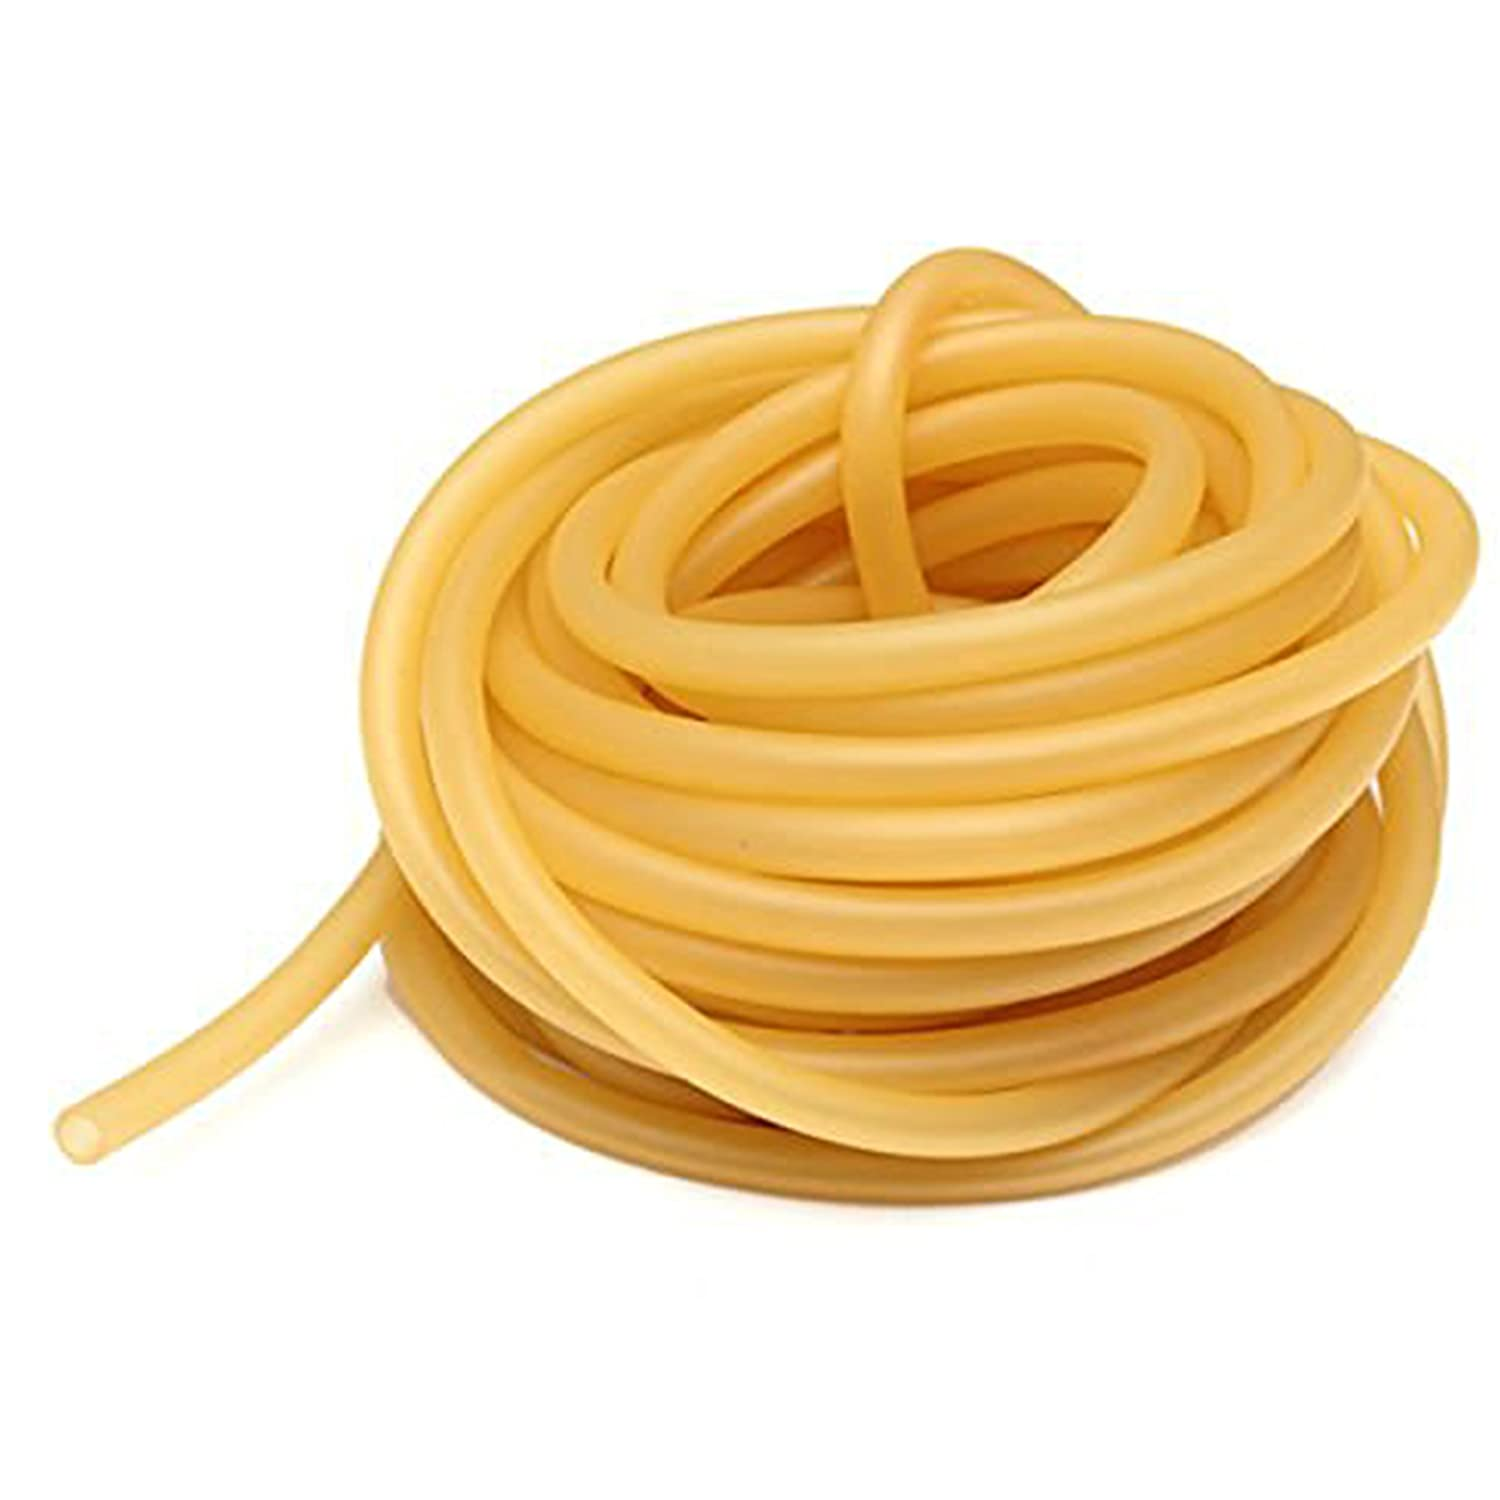 Yosoo New 6x9mm Natural Latex Rubber Band Rubber Hose for Slingshot Catapult Surgical Tube Elastic Parts 3m